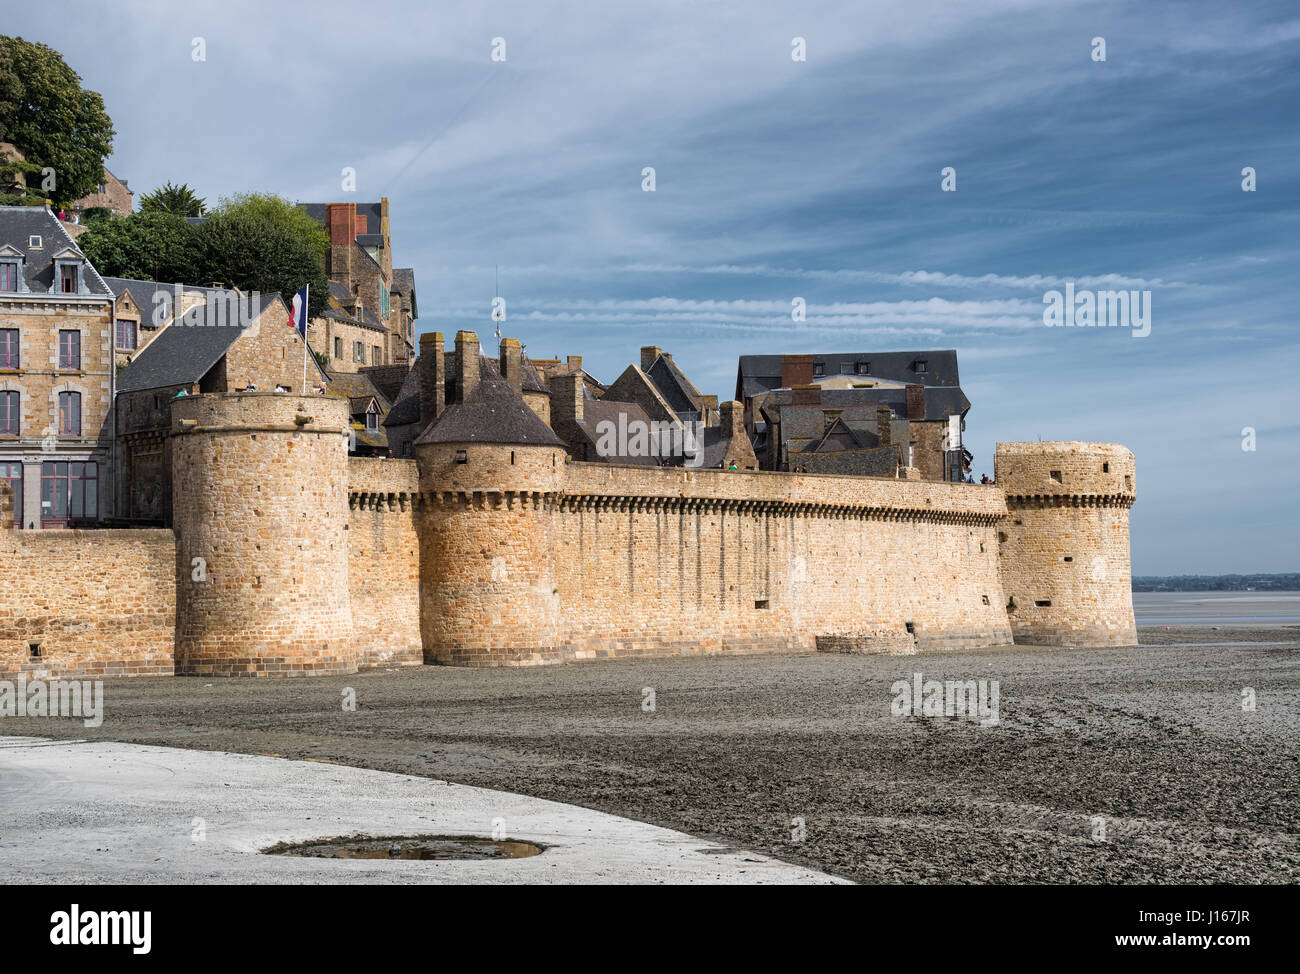 Panoramic view on the stone wall fortifications of Mont-Saint-Michel abbey, France - Stock Image